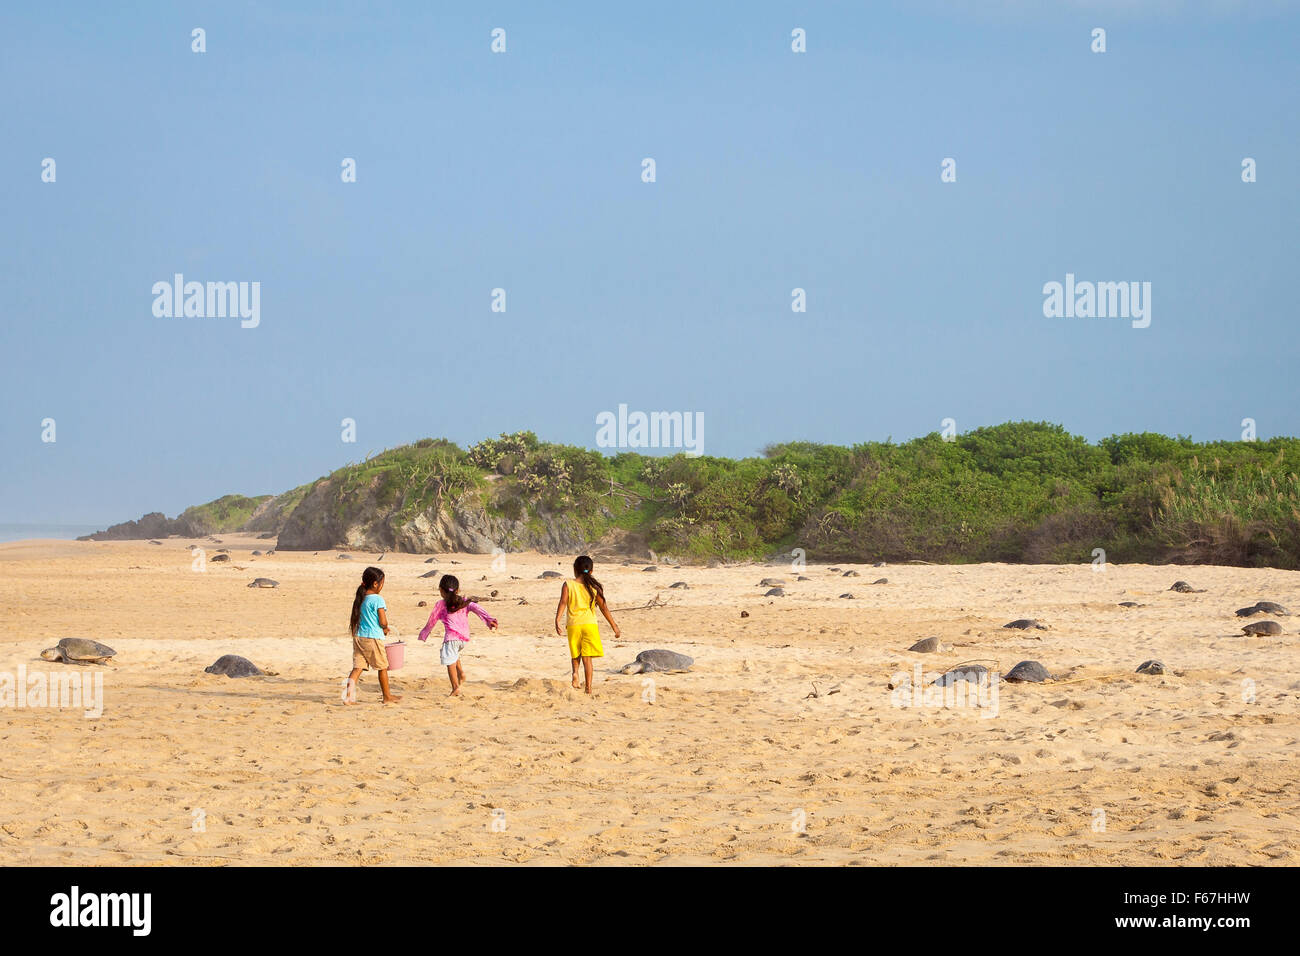 Indigenous children from the village of Ixtapilla on the beach during an arribazon of Olive Ridley sea turtles, - Stock Image